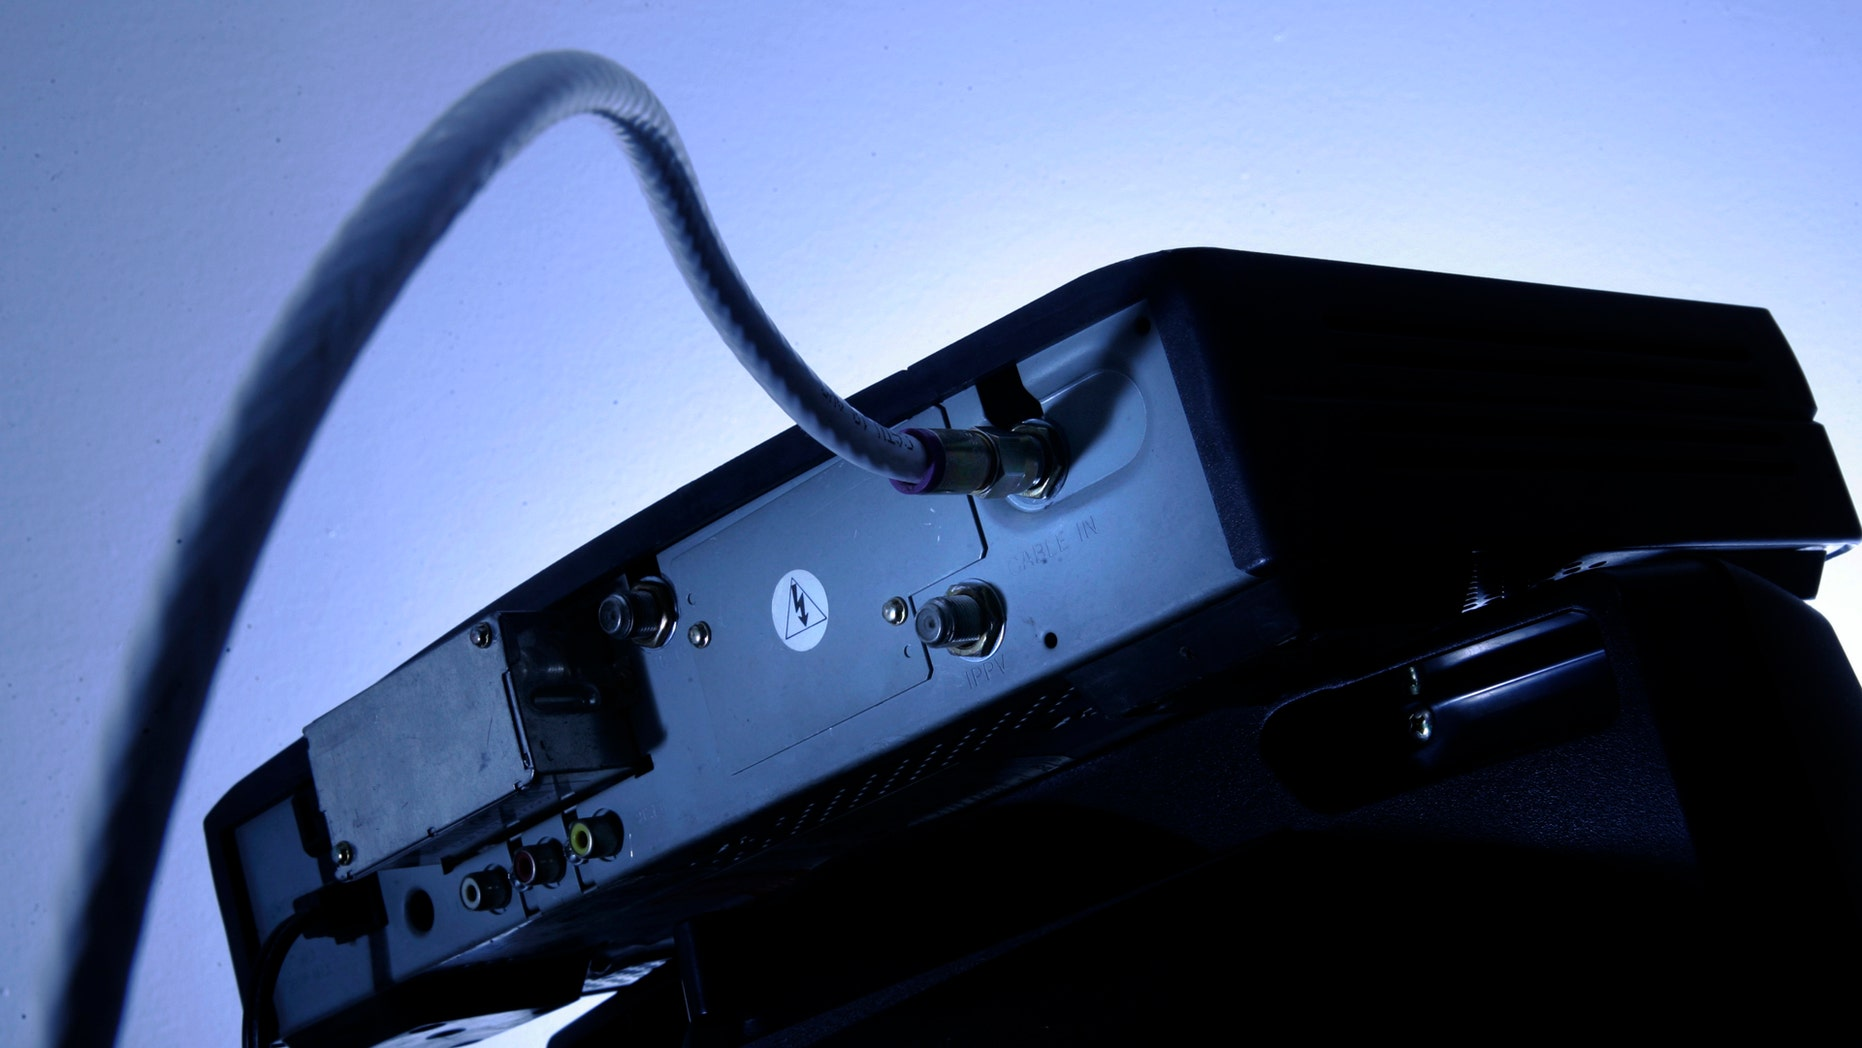 FILE - This Wednesday, May 30, 2007, file photo shows a cable box on top of a television in Philadelphia. Cable and satellite TV providers are ringing in 2018 with an unwelcomed gift: higher cable bills. Although annual rate hikes are inevitable, many consumers manage to lower their bills by pushing back and getting promotional rates. (AP Photo/Matt Rourke, File)